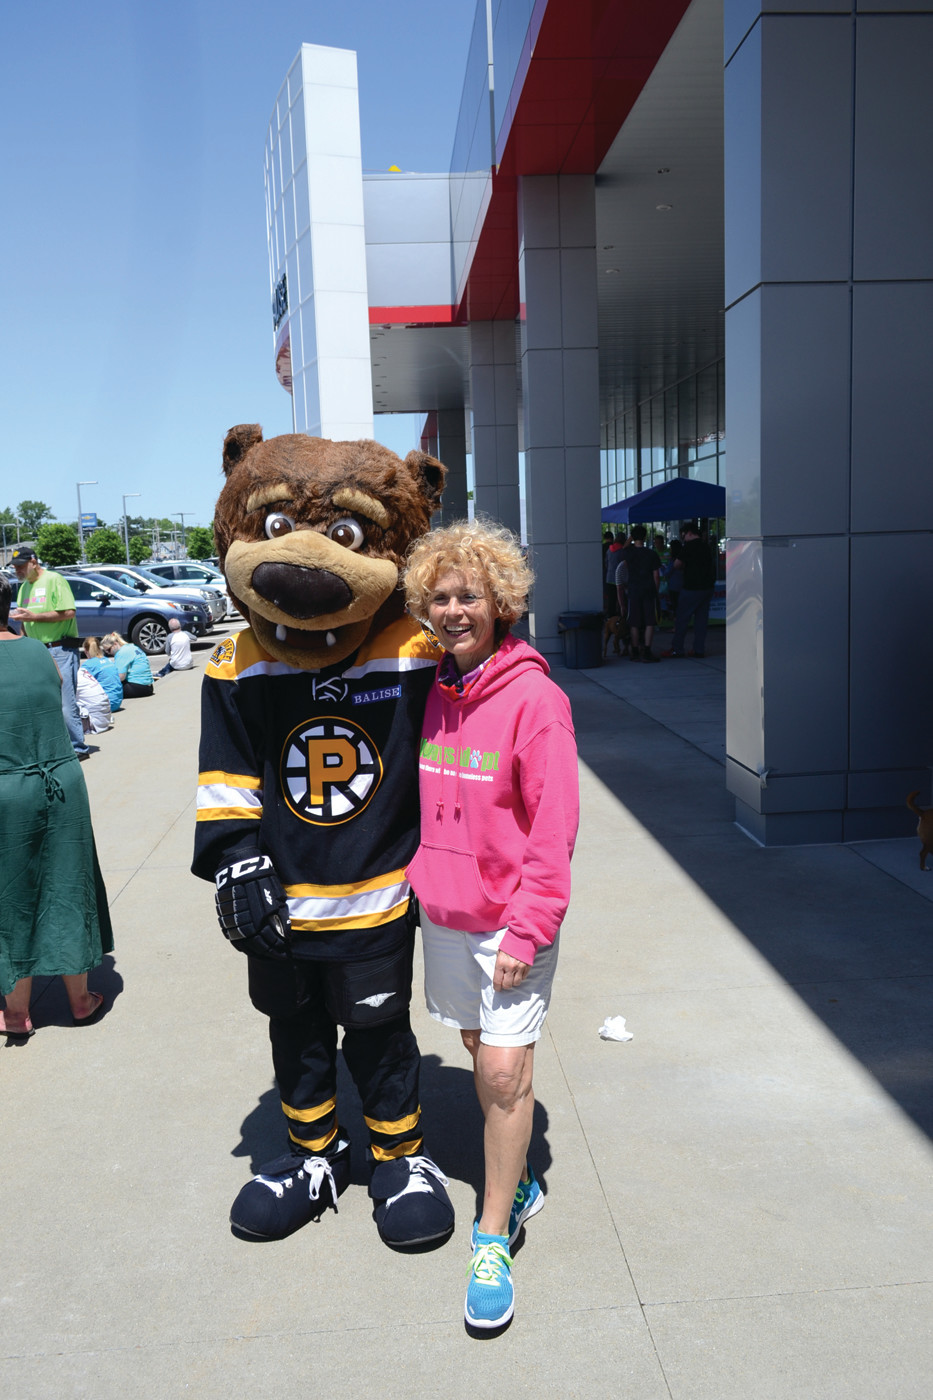 QUITE A SHOW: Louise Anderson Nicolosi, founder of Always Adopt, poses for a photo with P-Bruins mascot Samboni at the Super Dog Adoption Day event in Warwick on Sunday. There were also food trucks and doggy treat vendors throughout the dealership grounds.